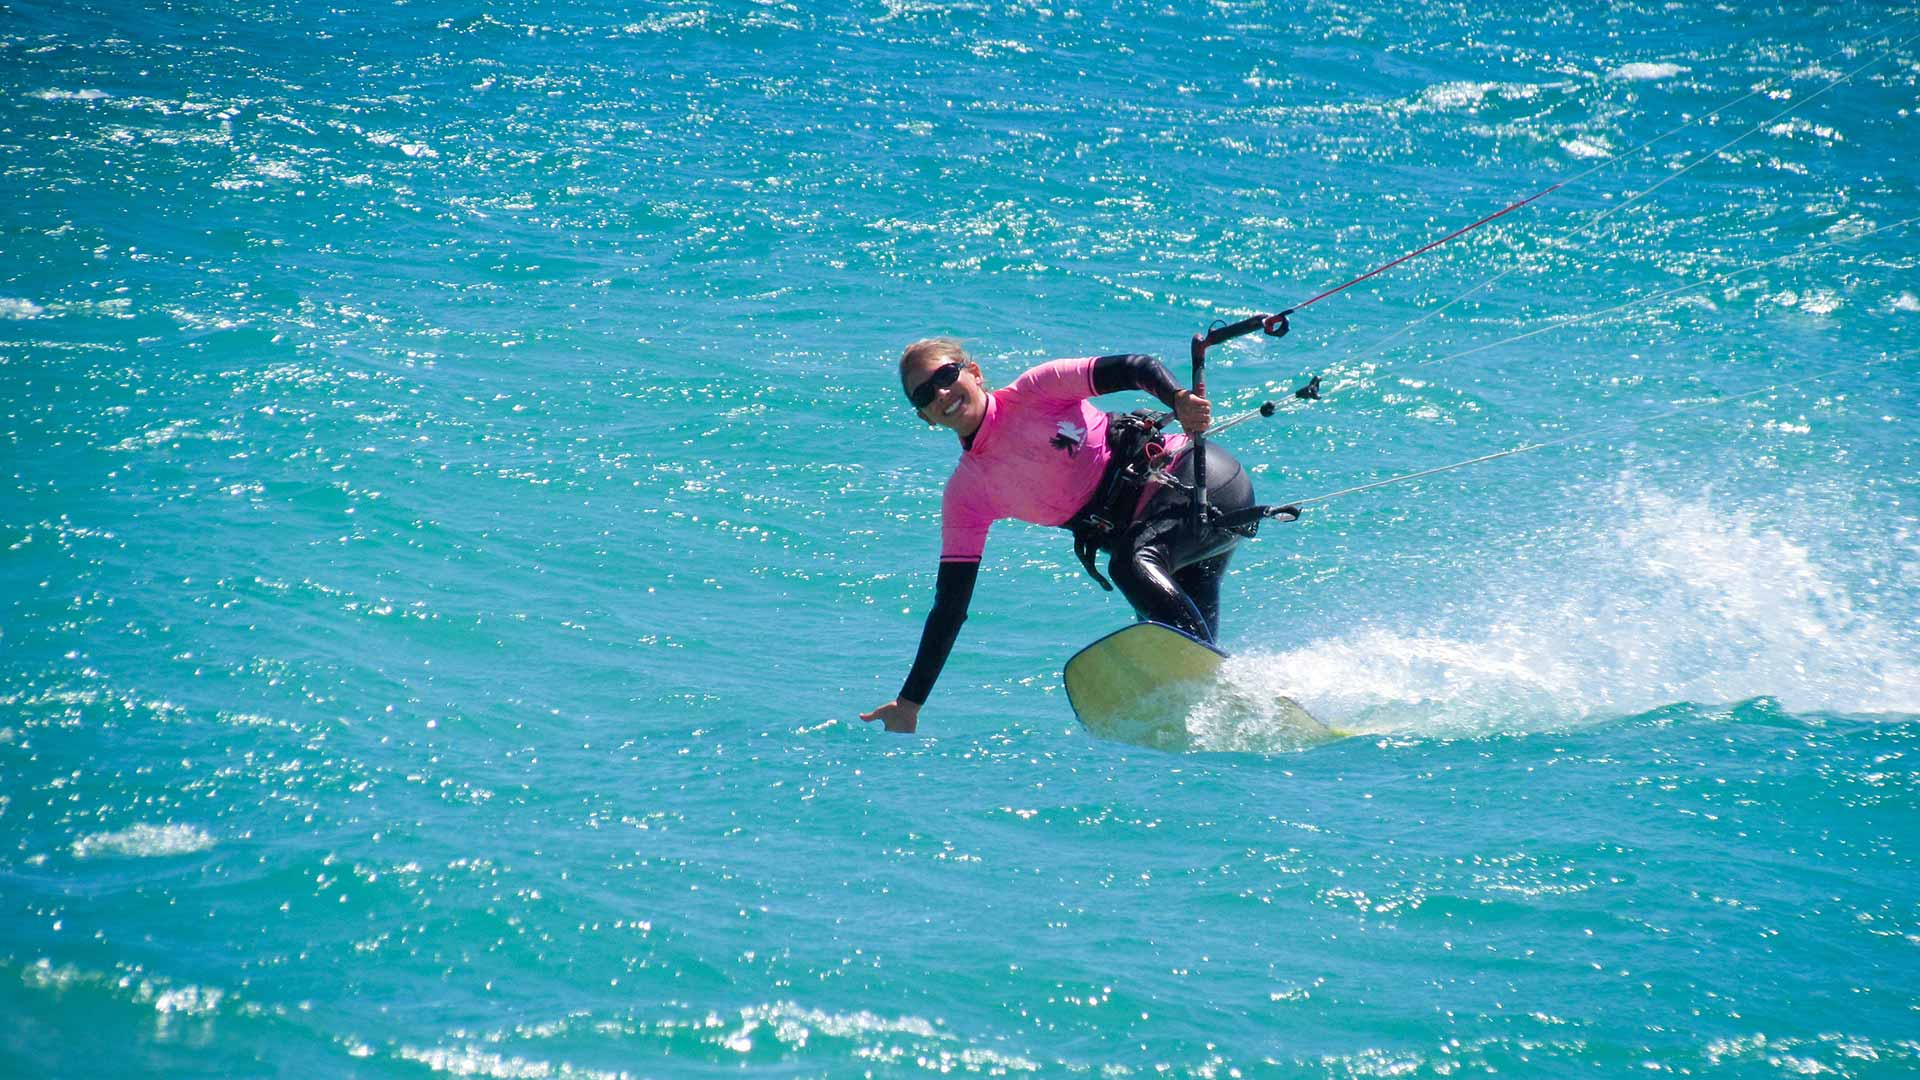 wave_kitesurfing_course_W1b